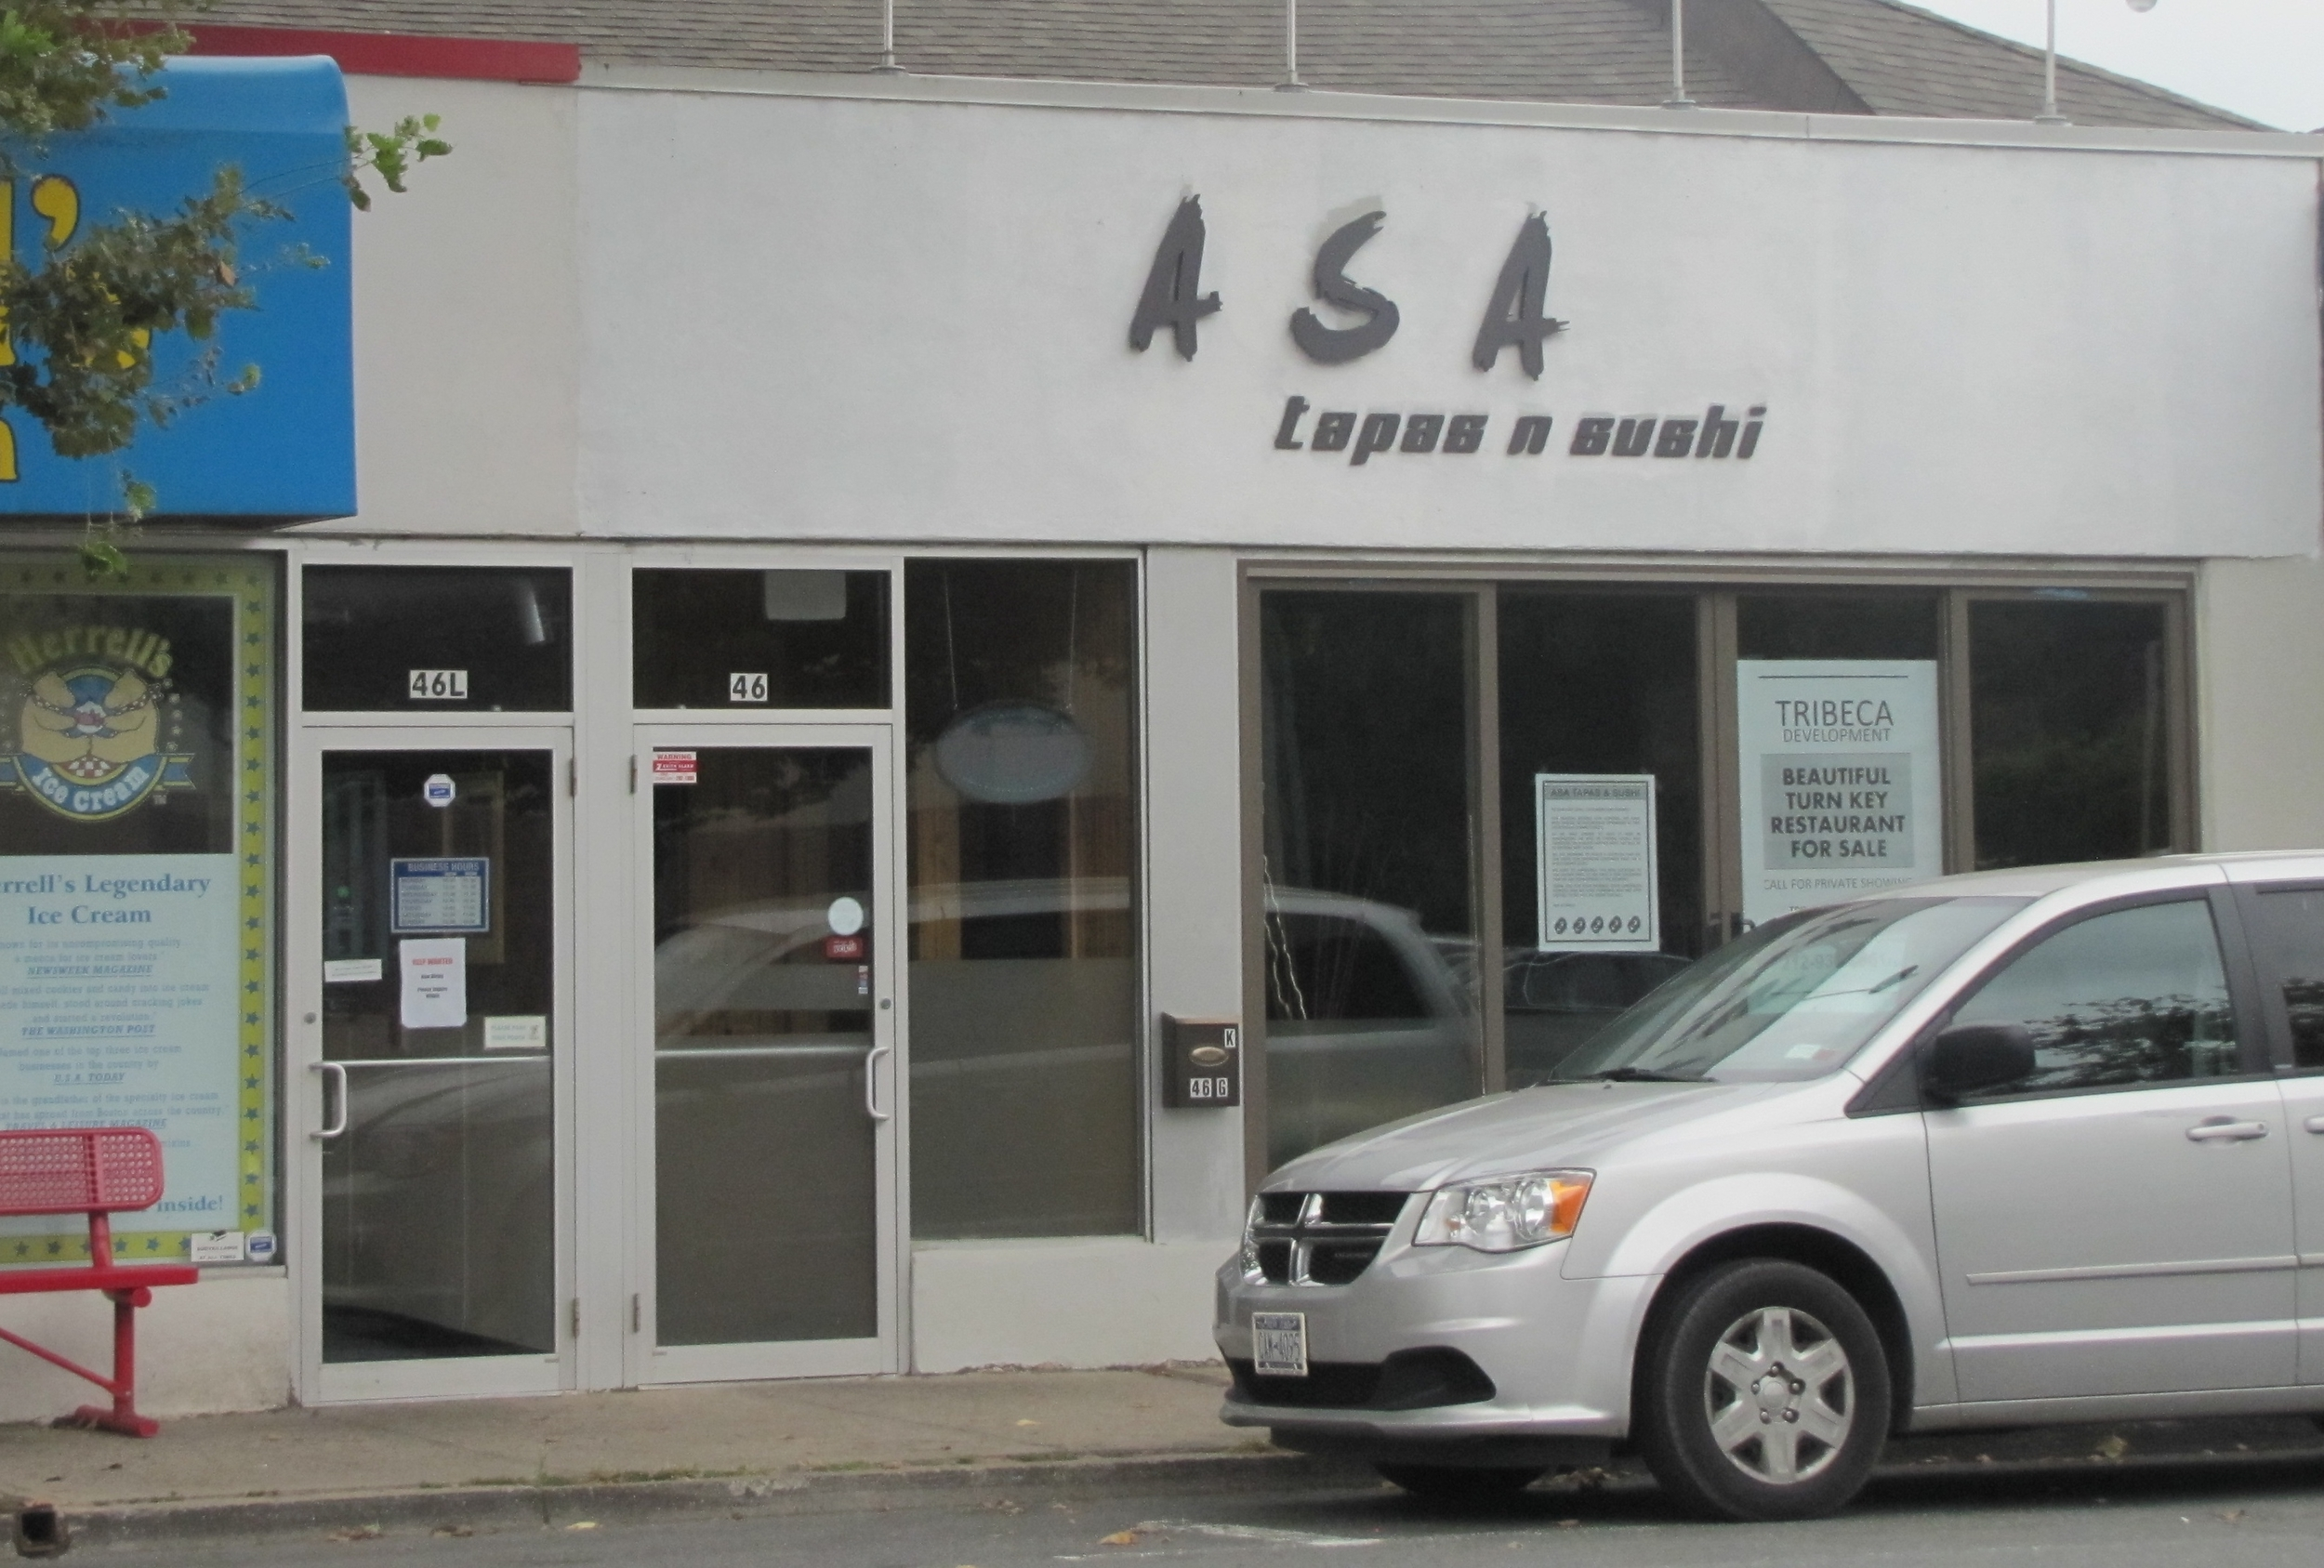 Pictured: The former storefront of Asa Tapas & Sushi in Huntington village.